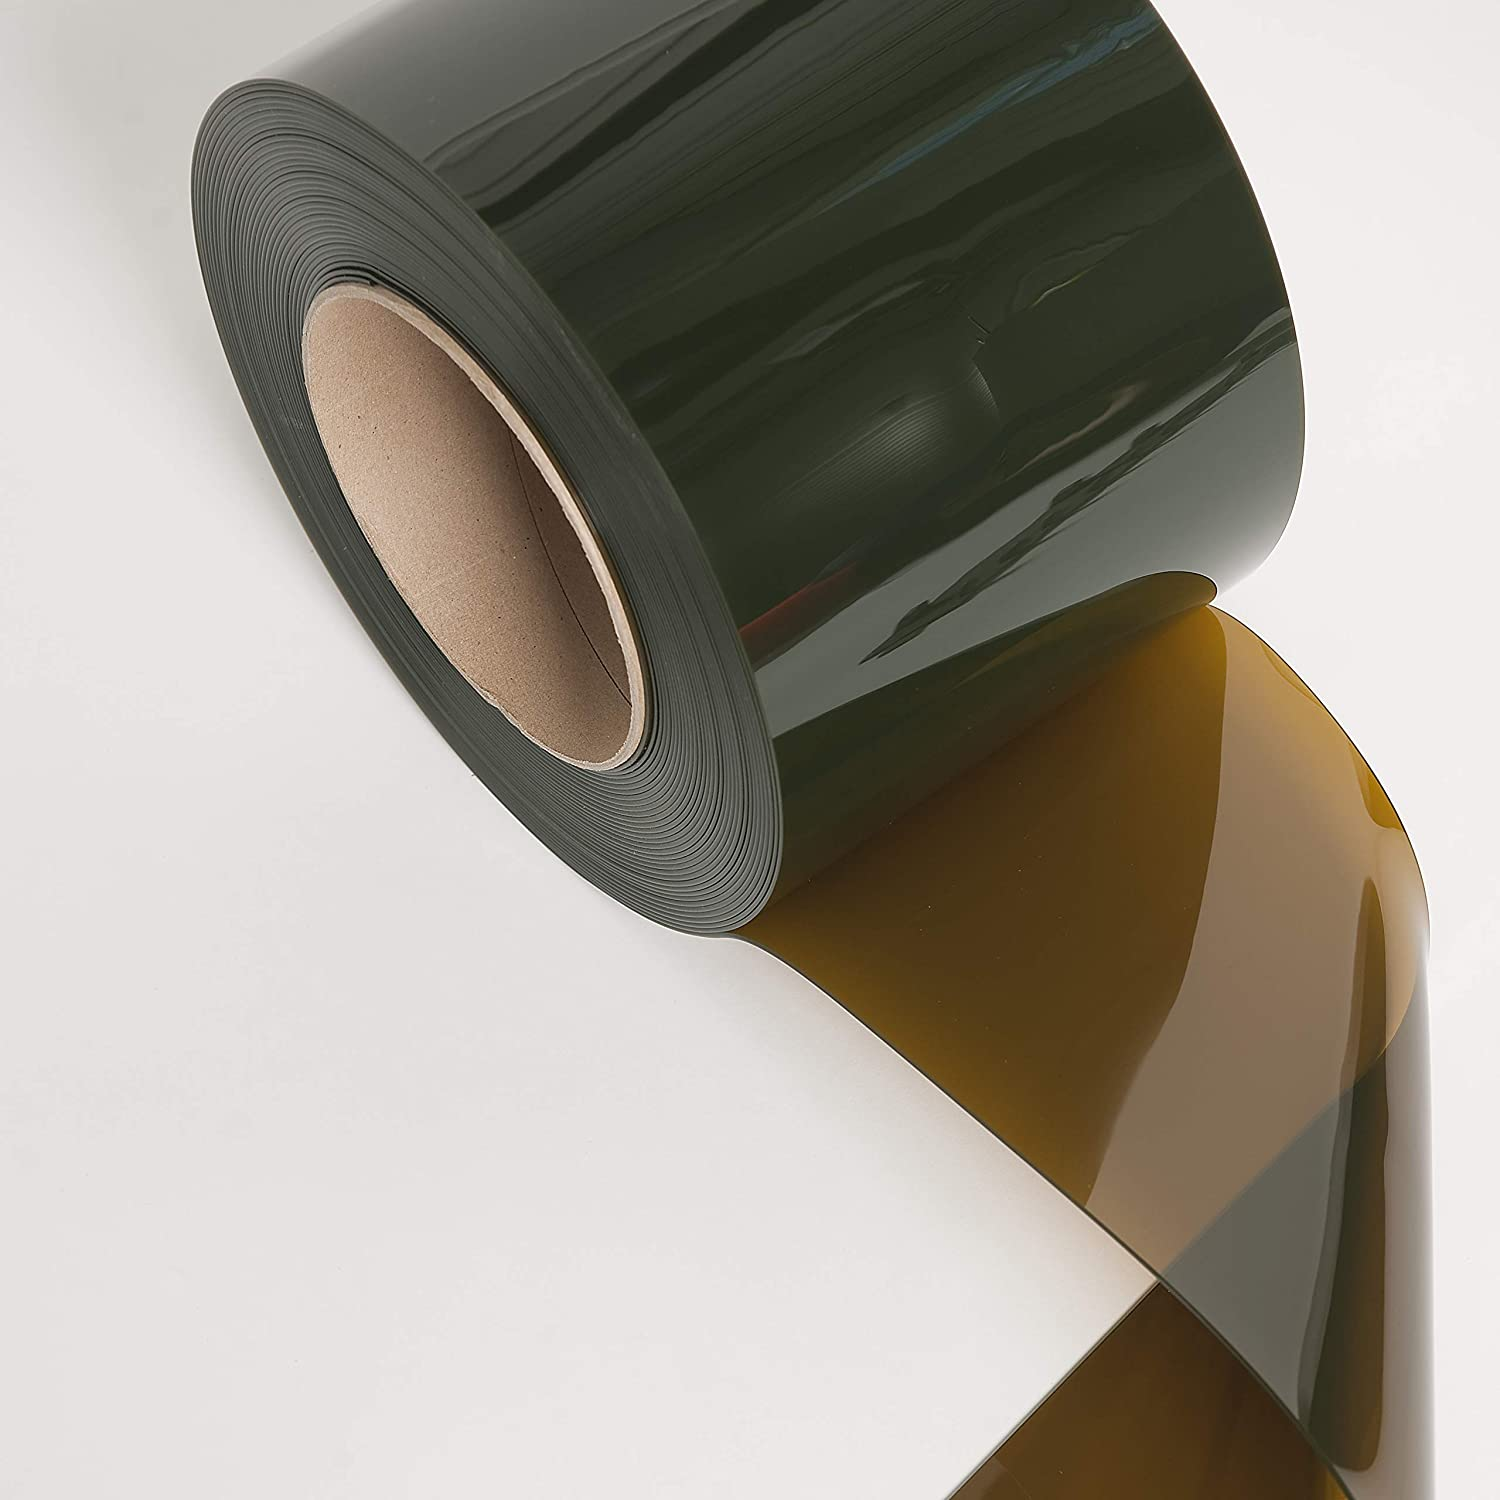 75 Roll PVC Vinyl Strip Curtain Door Bulk Roll 8 x .08 Welding Amber PVC Material